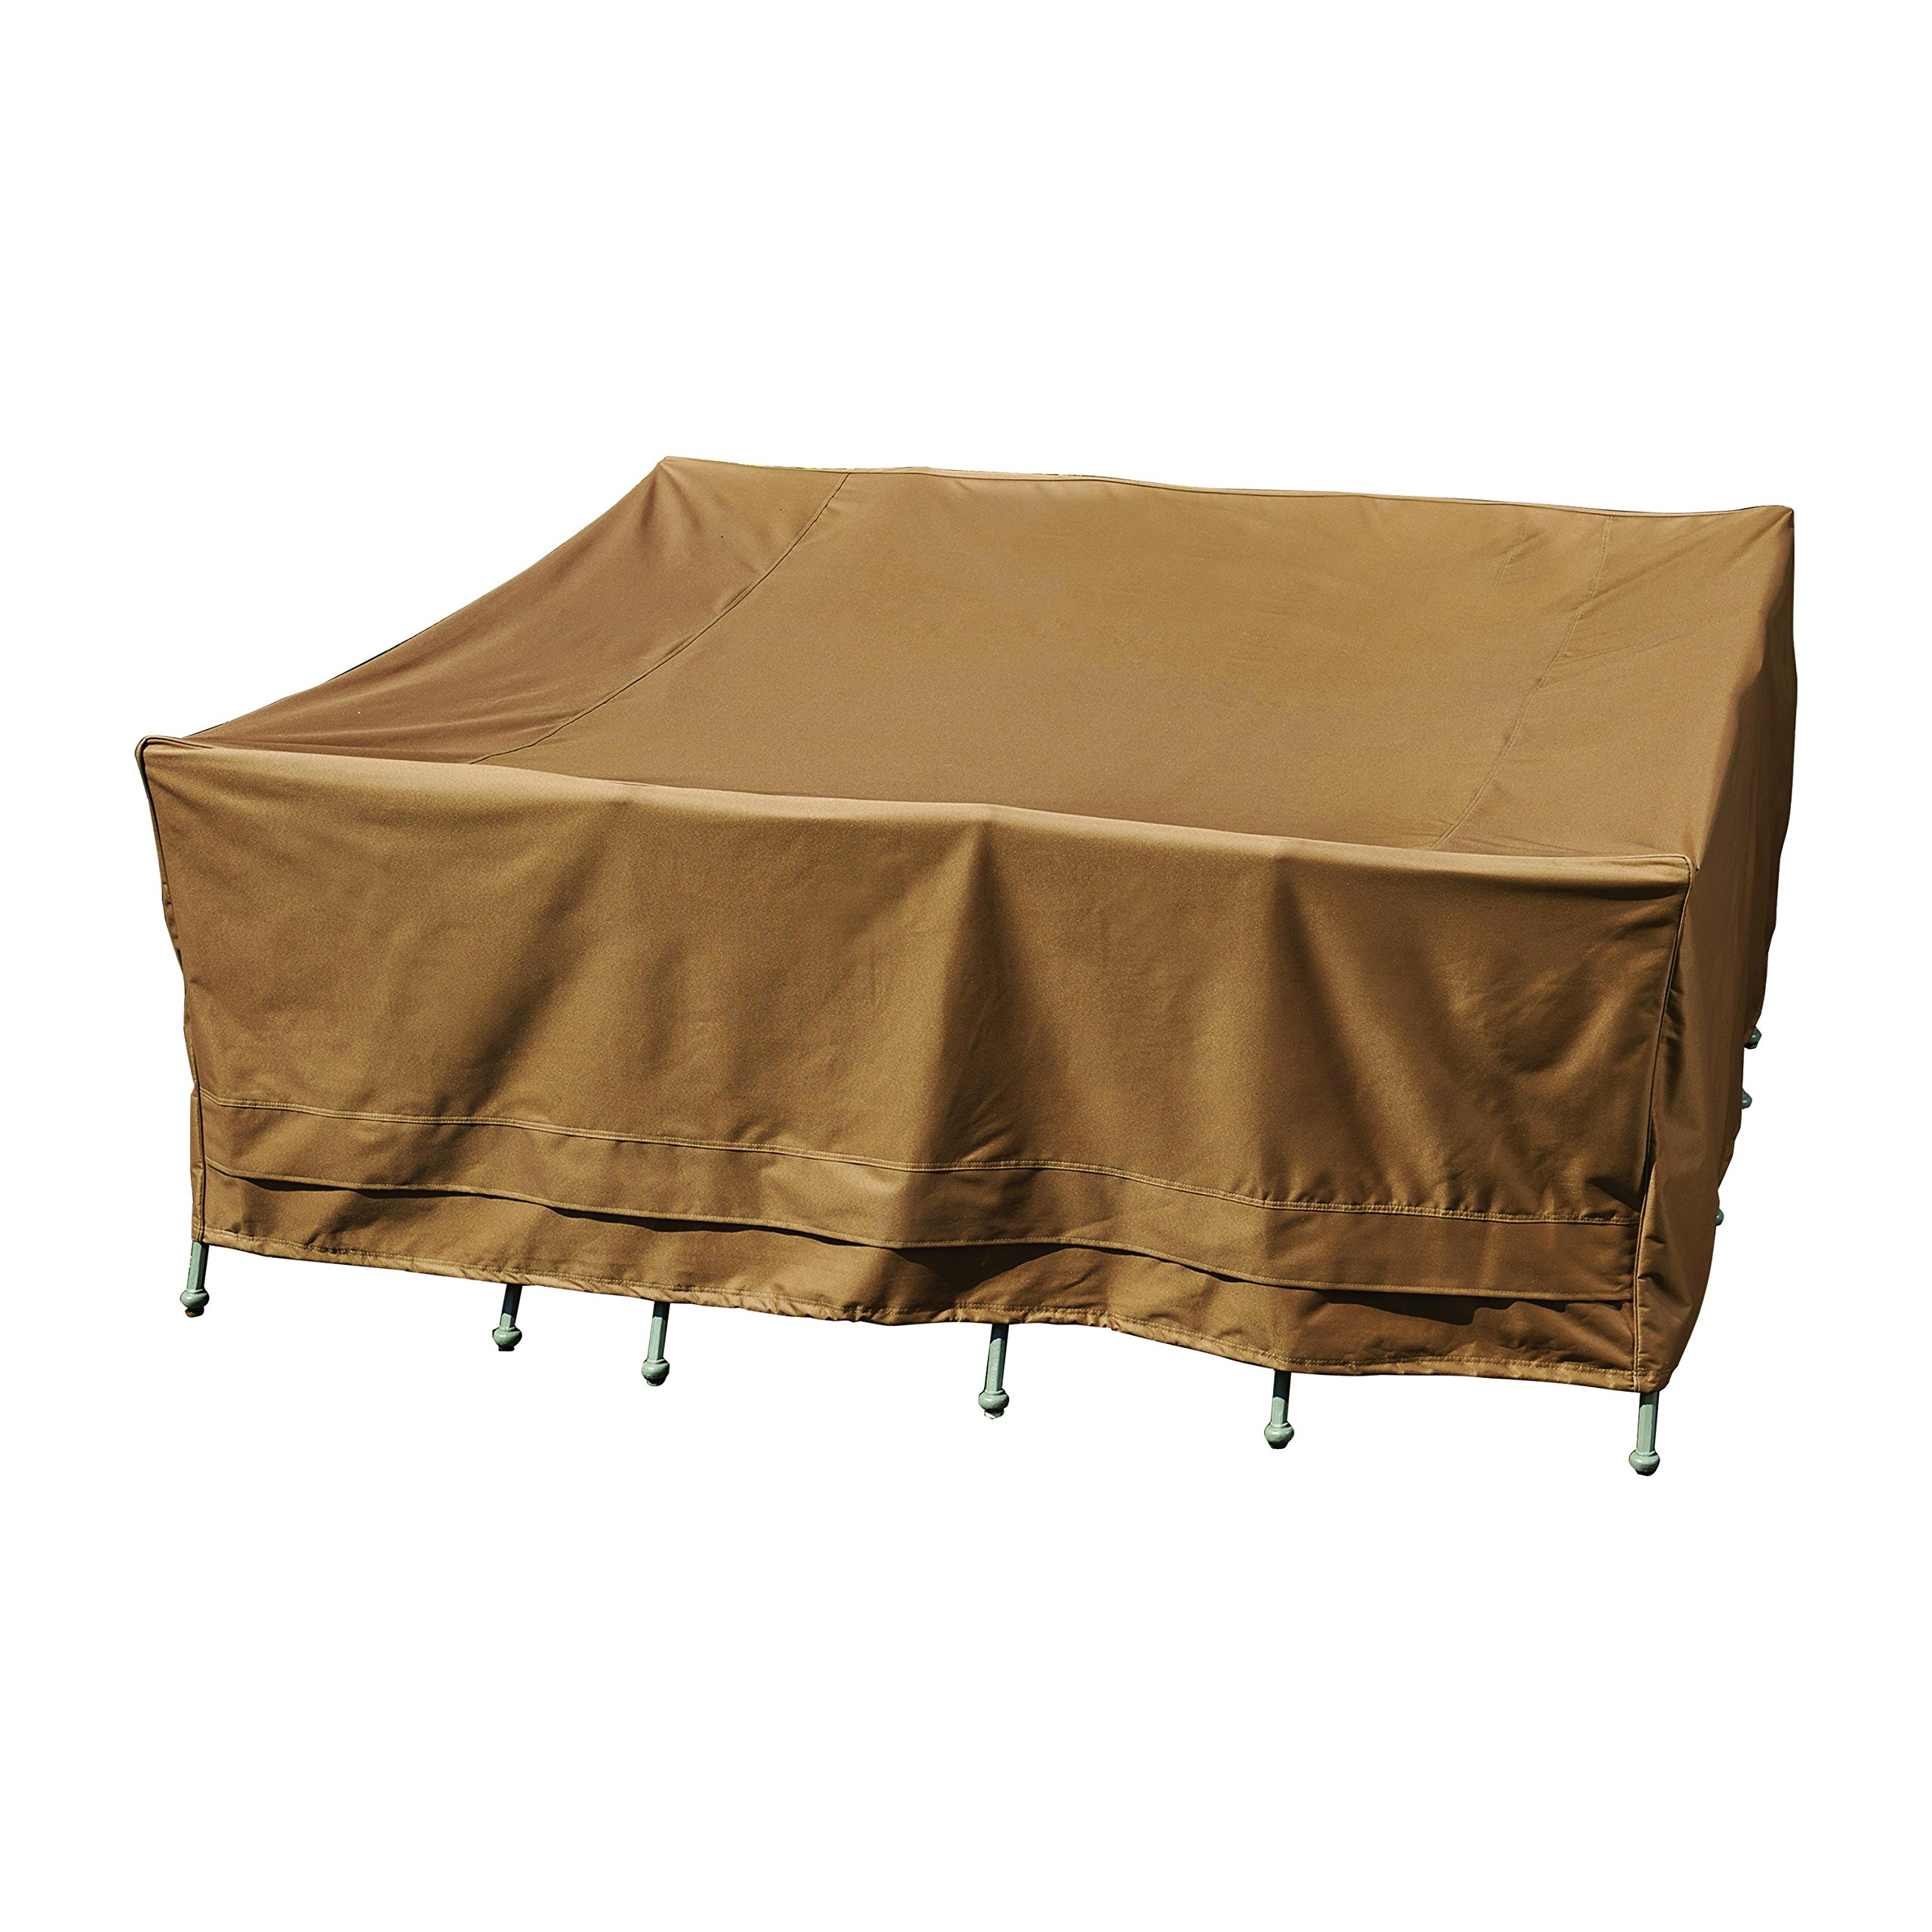 Patio Armor SF43351 Square Table Cover, 84''/84''/30'' by Patio Armor